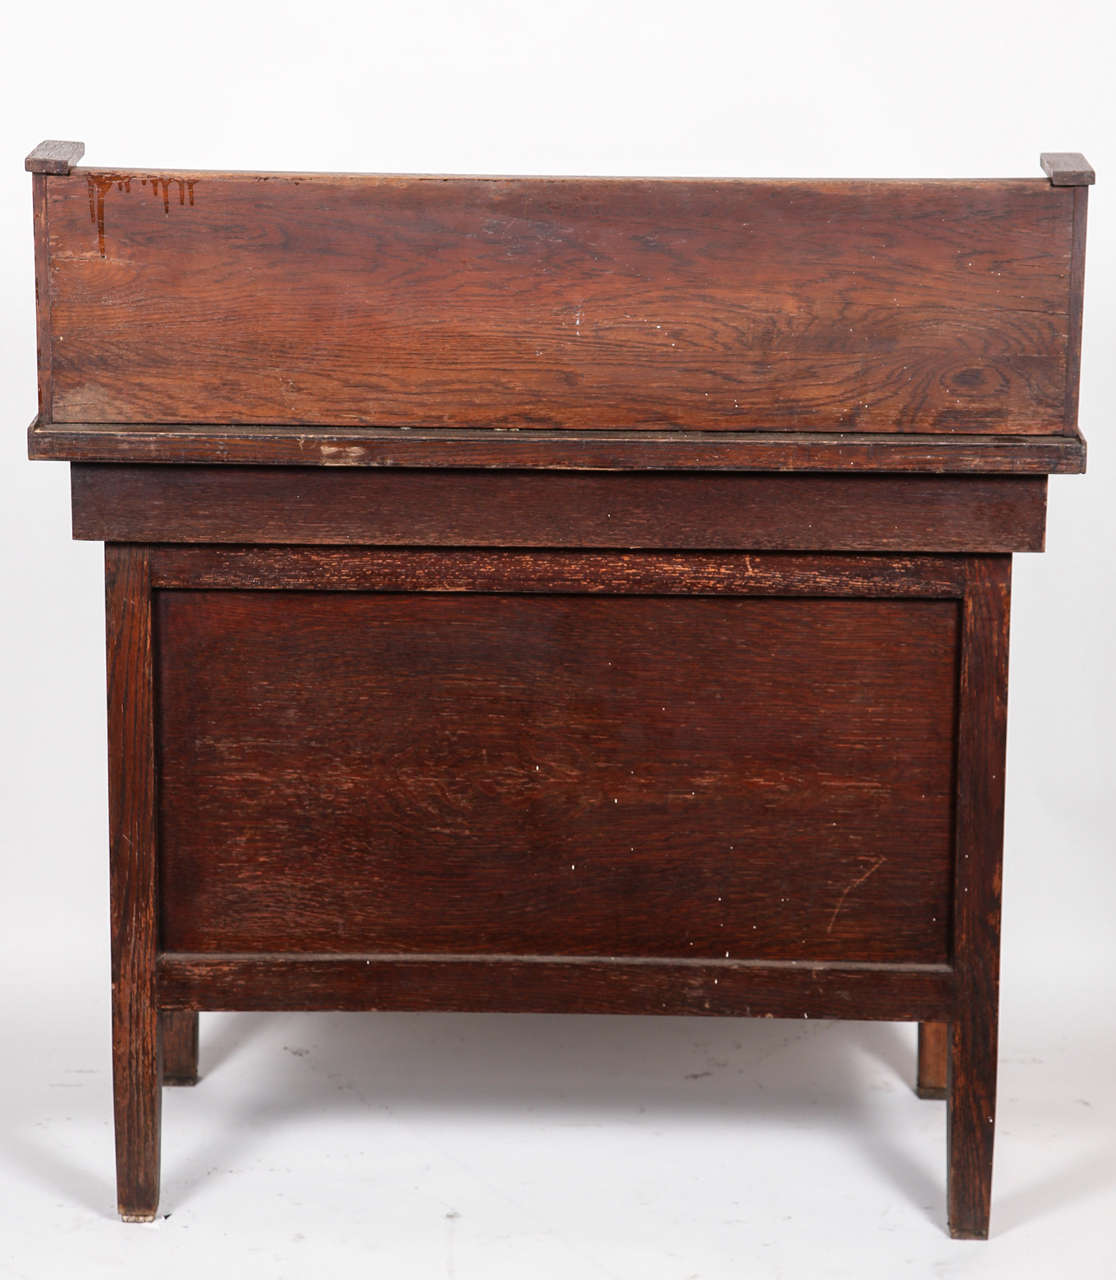 20th Century 1800s Wooden Bank Table With Pigeon Holes And Pencil Tray For